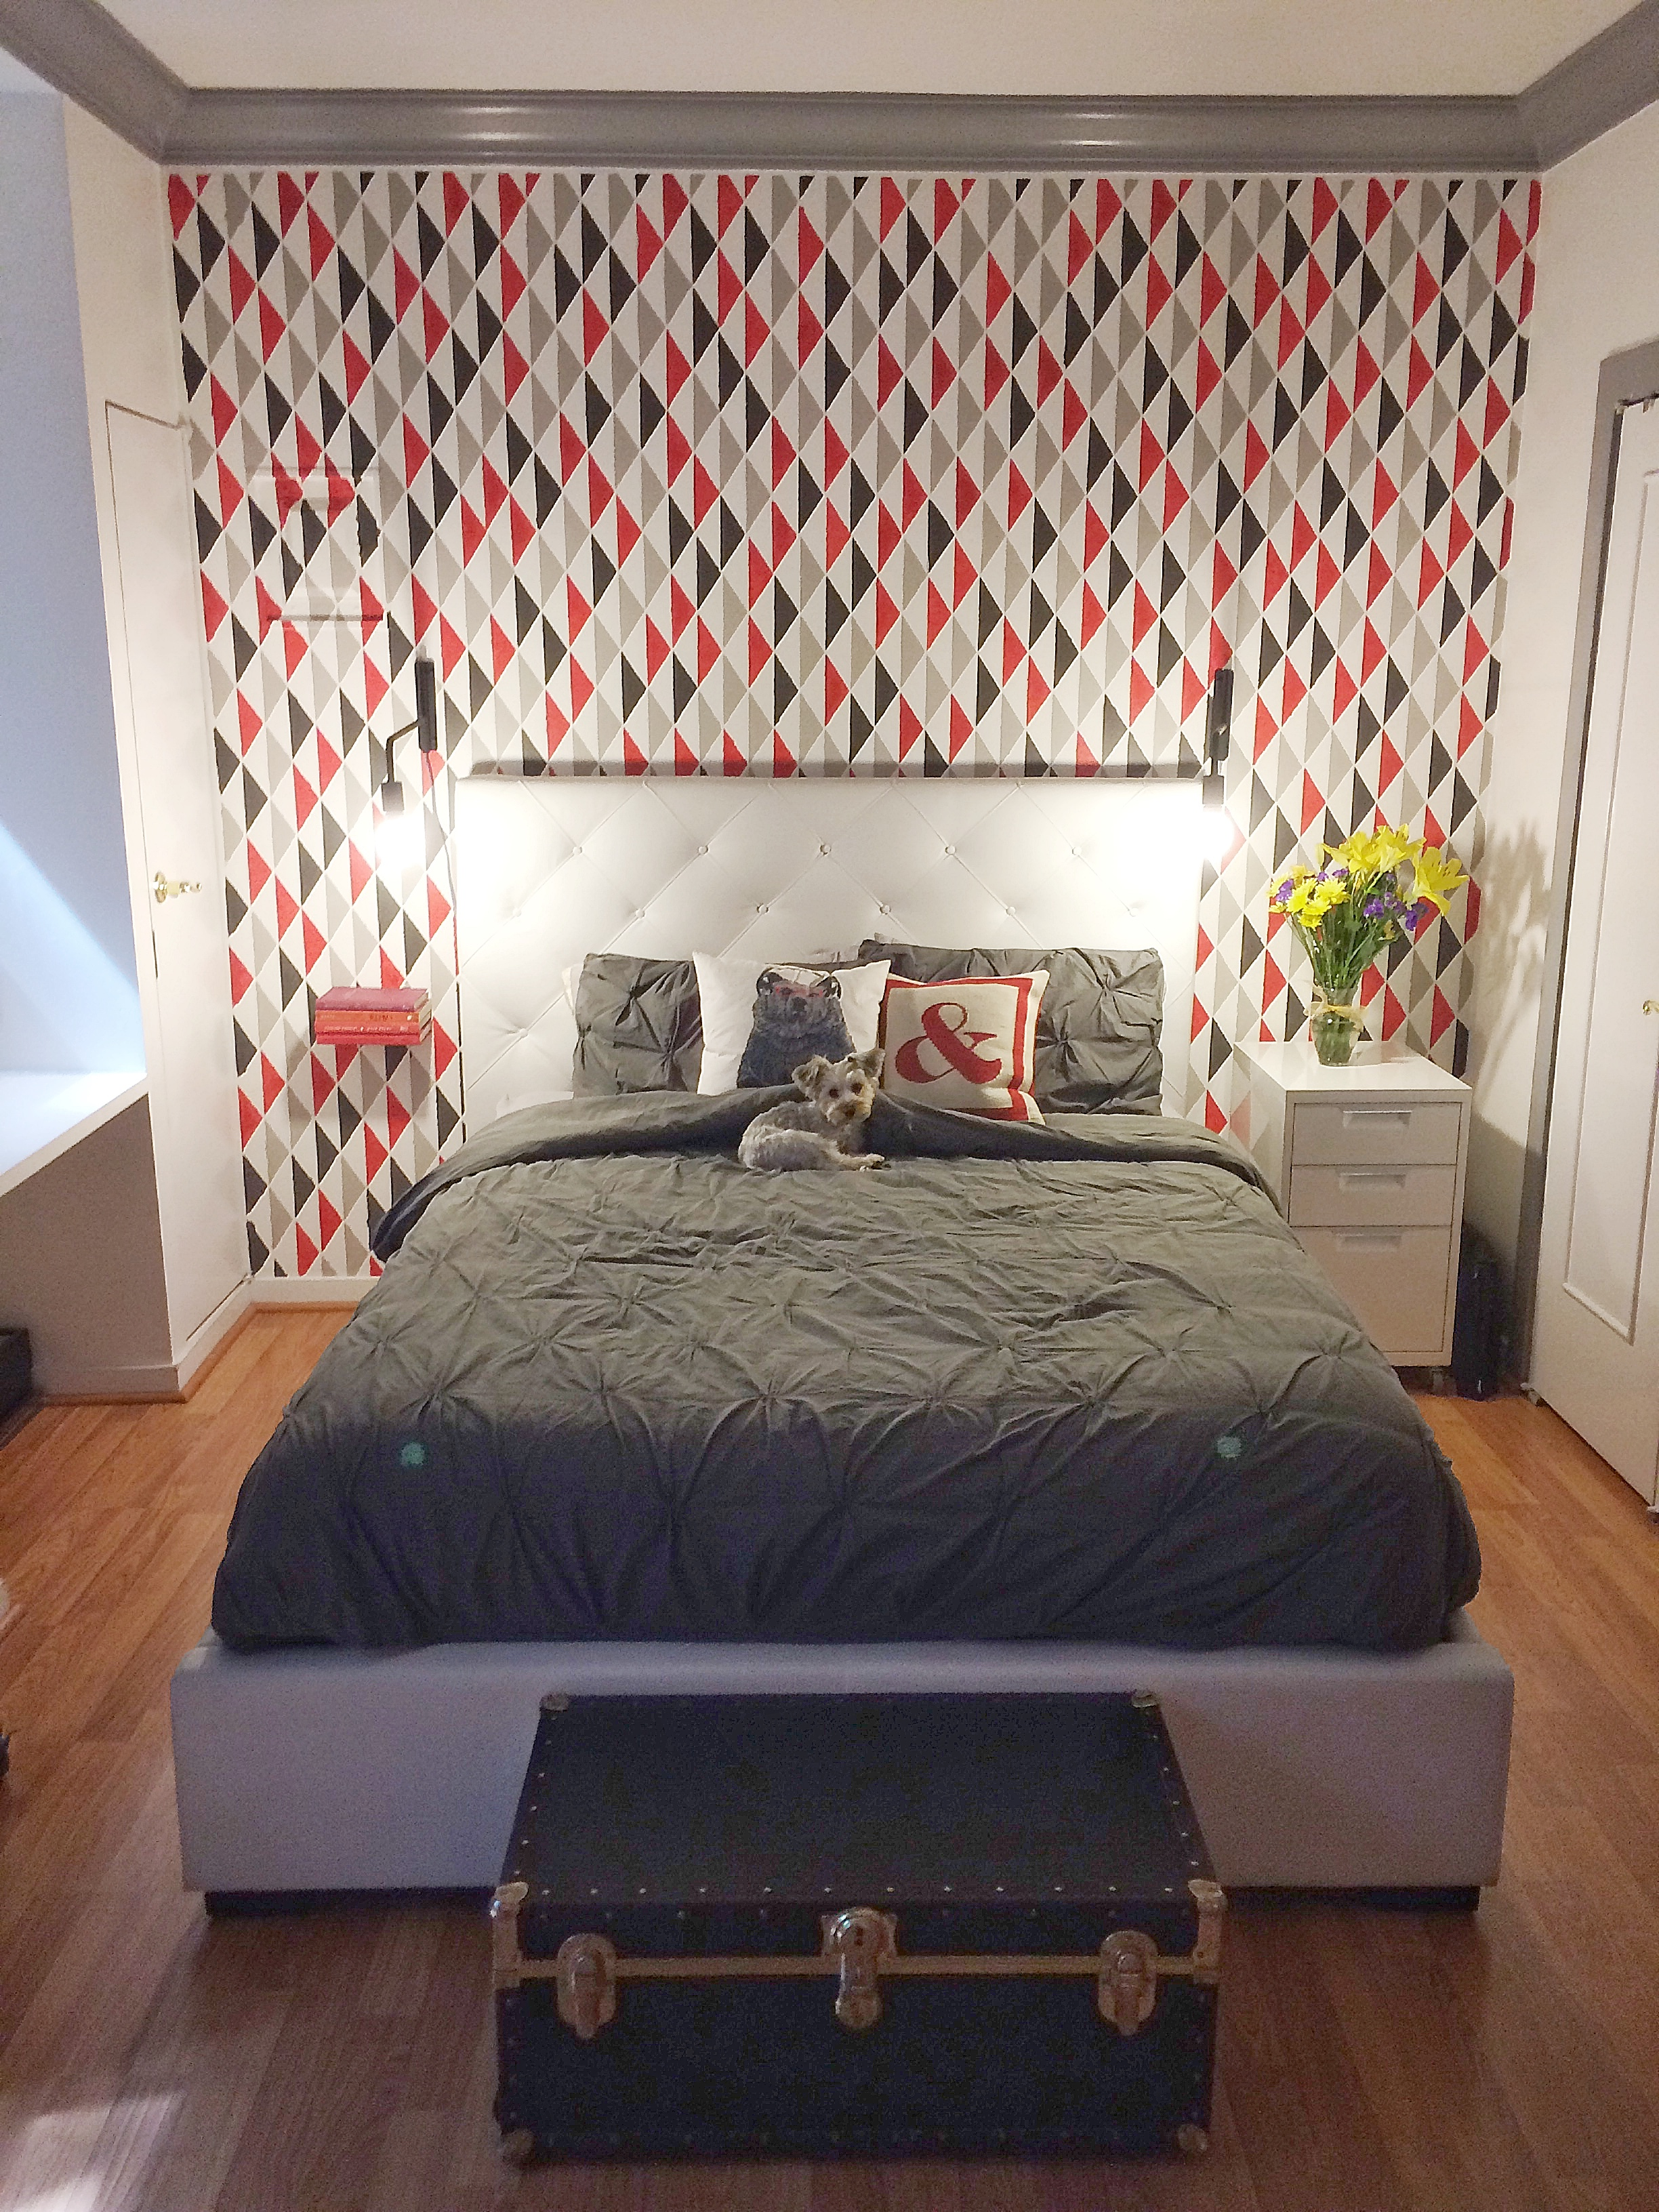 This project was a blast. We had a studio apartment with a couple different nooks.  The stencil was placed behind the bed to give a real pop and definition of space. The triangle pattern was playful and enhanced the existing vibe of the apartment.